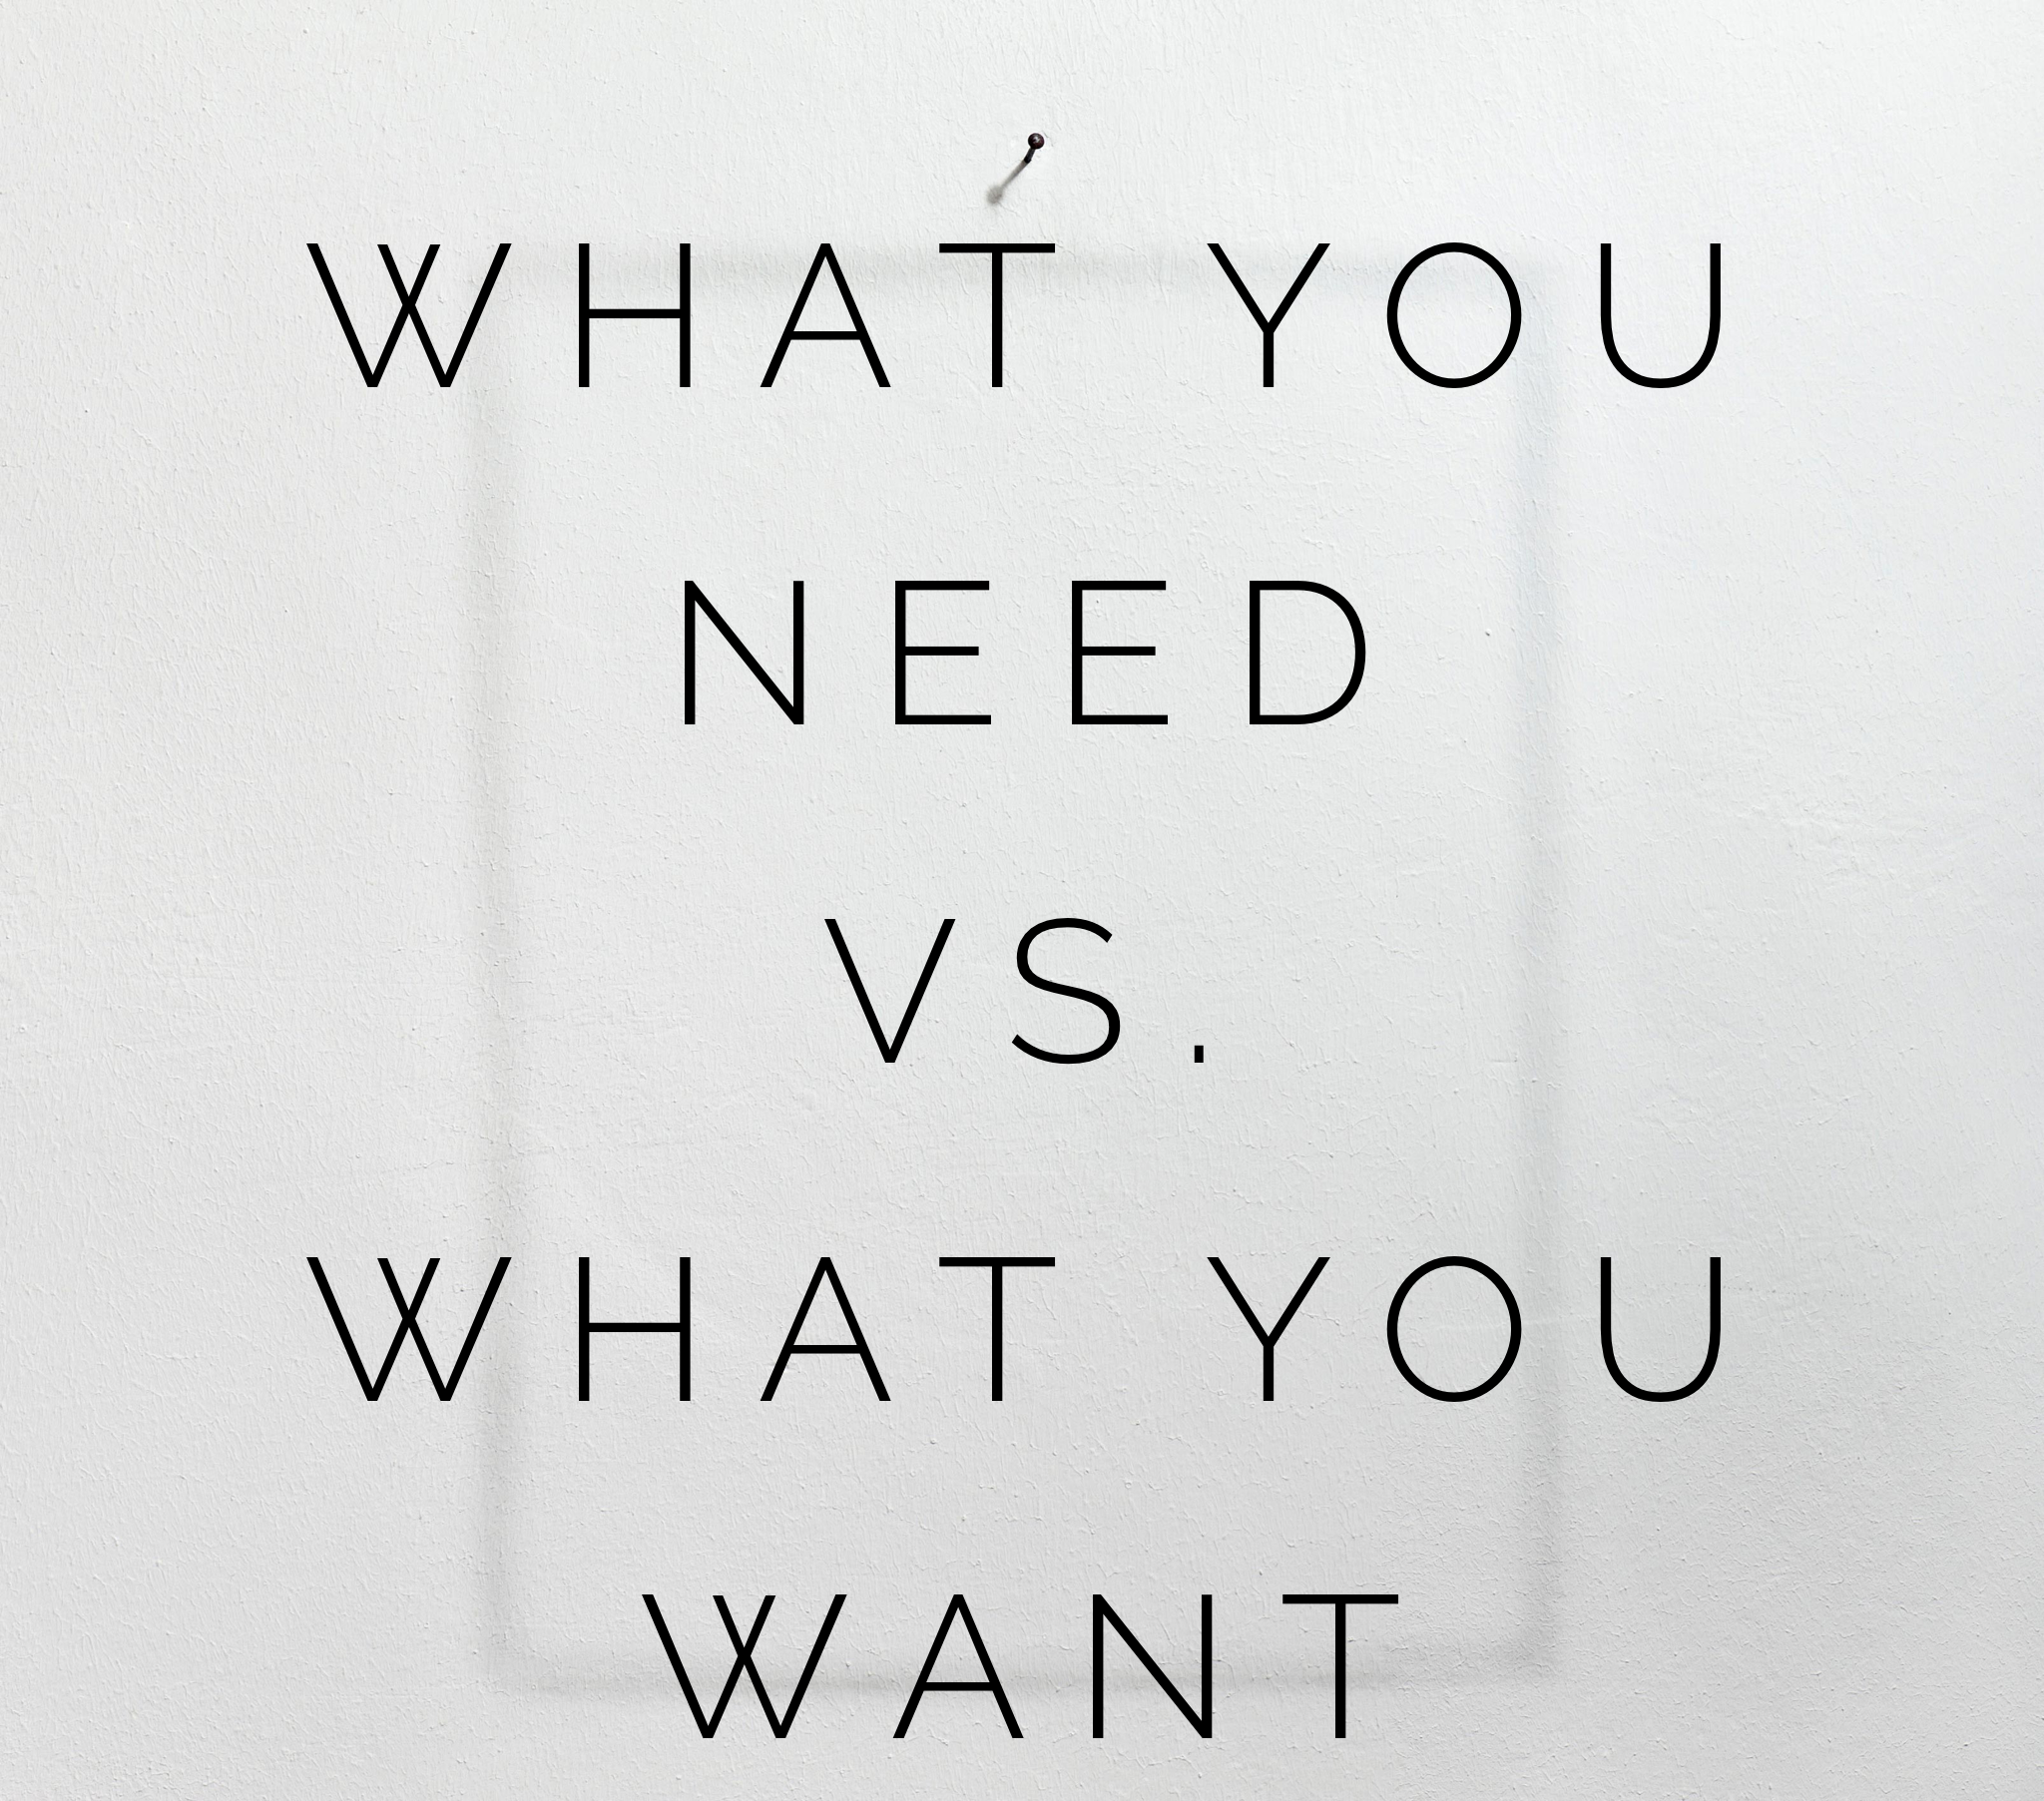 Episode 196: Your Needs Vs. Your Wants